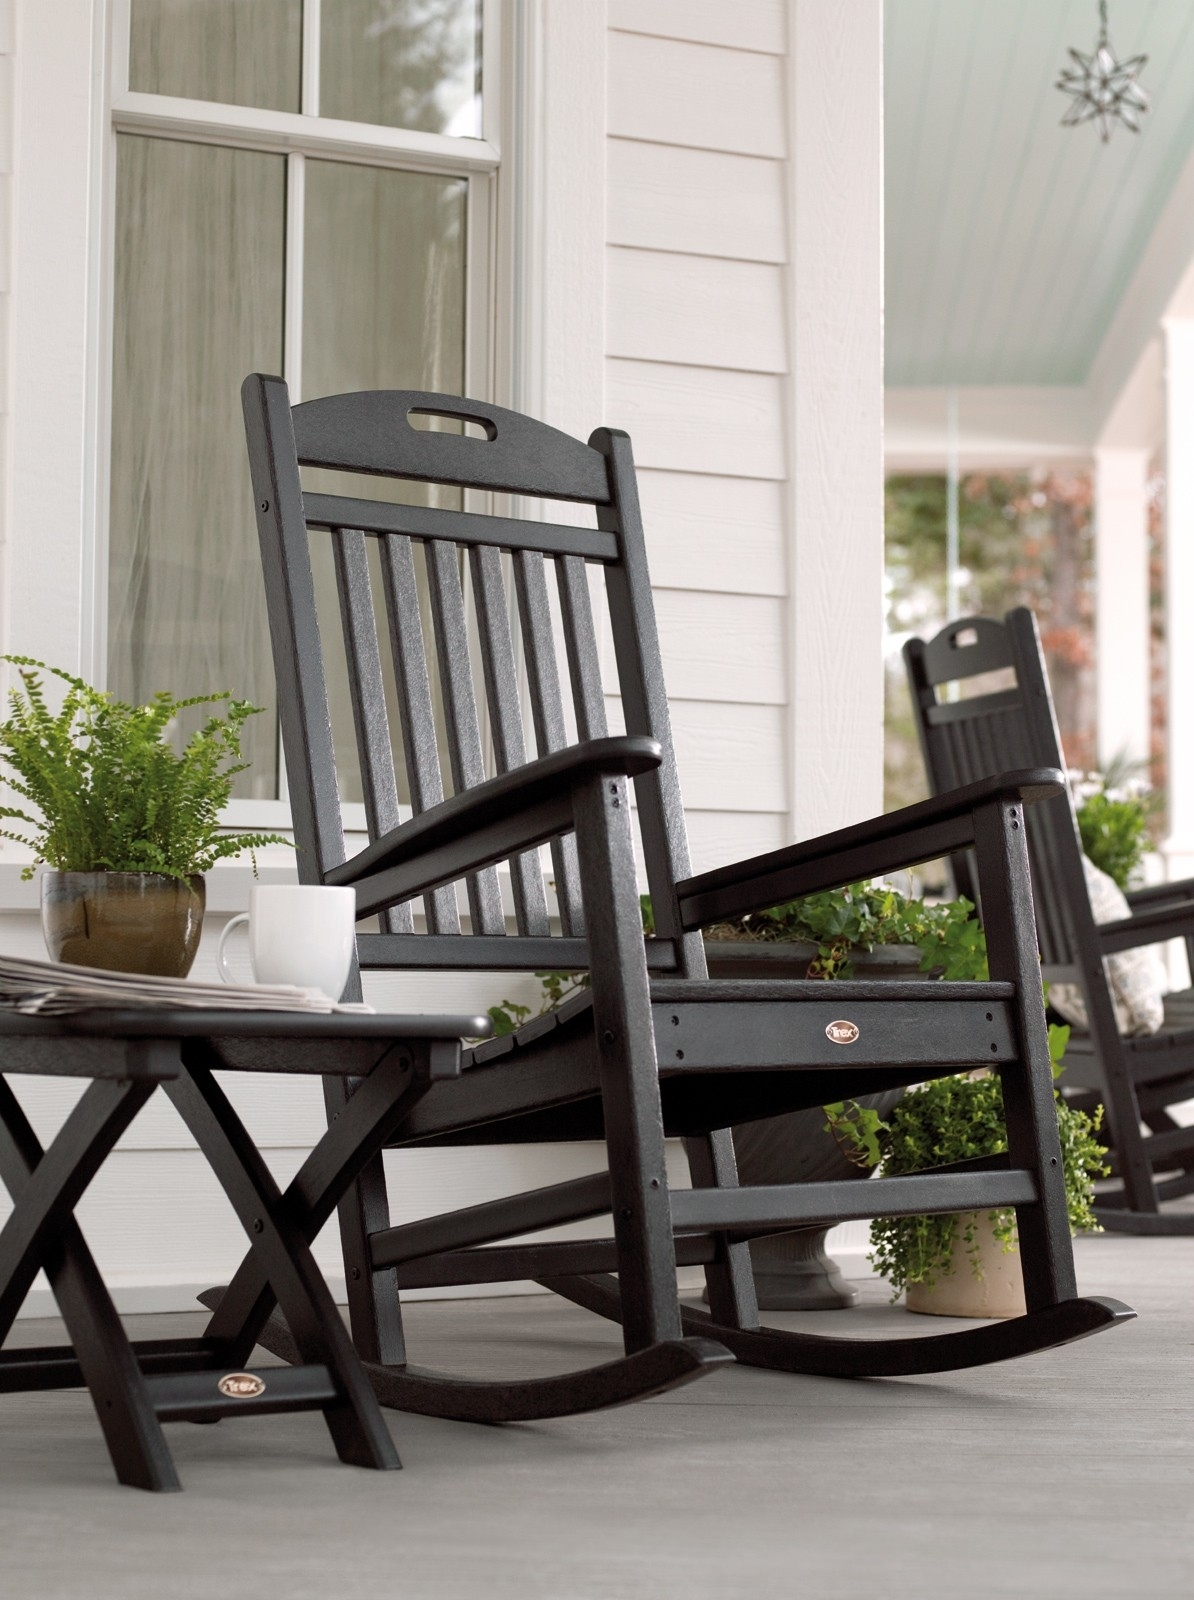 Yacht Club Rocking Chair For Rocking Chair Outdoor Wooden (View 15 of 15)